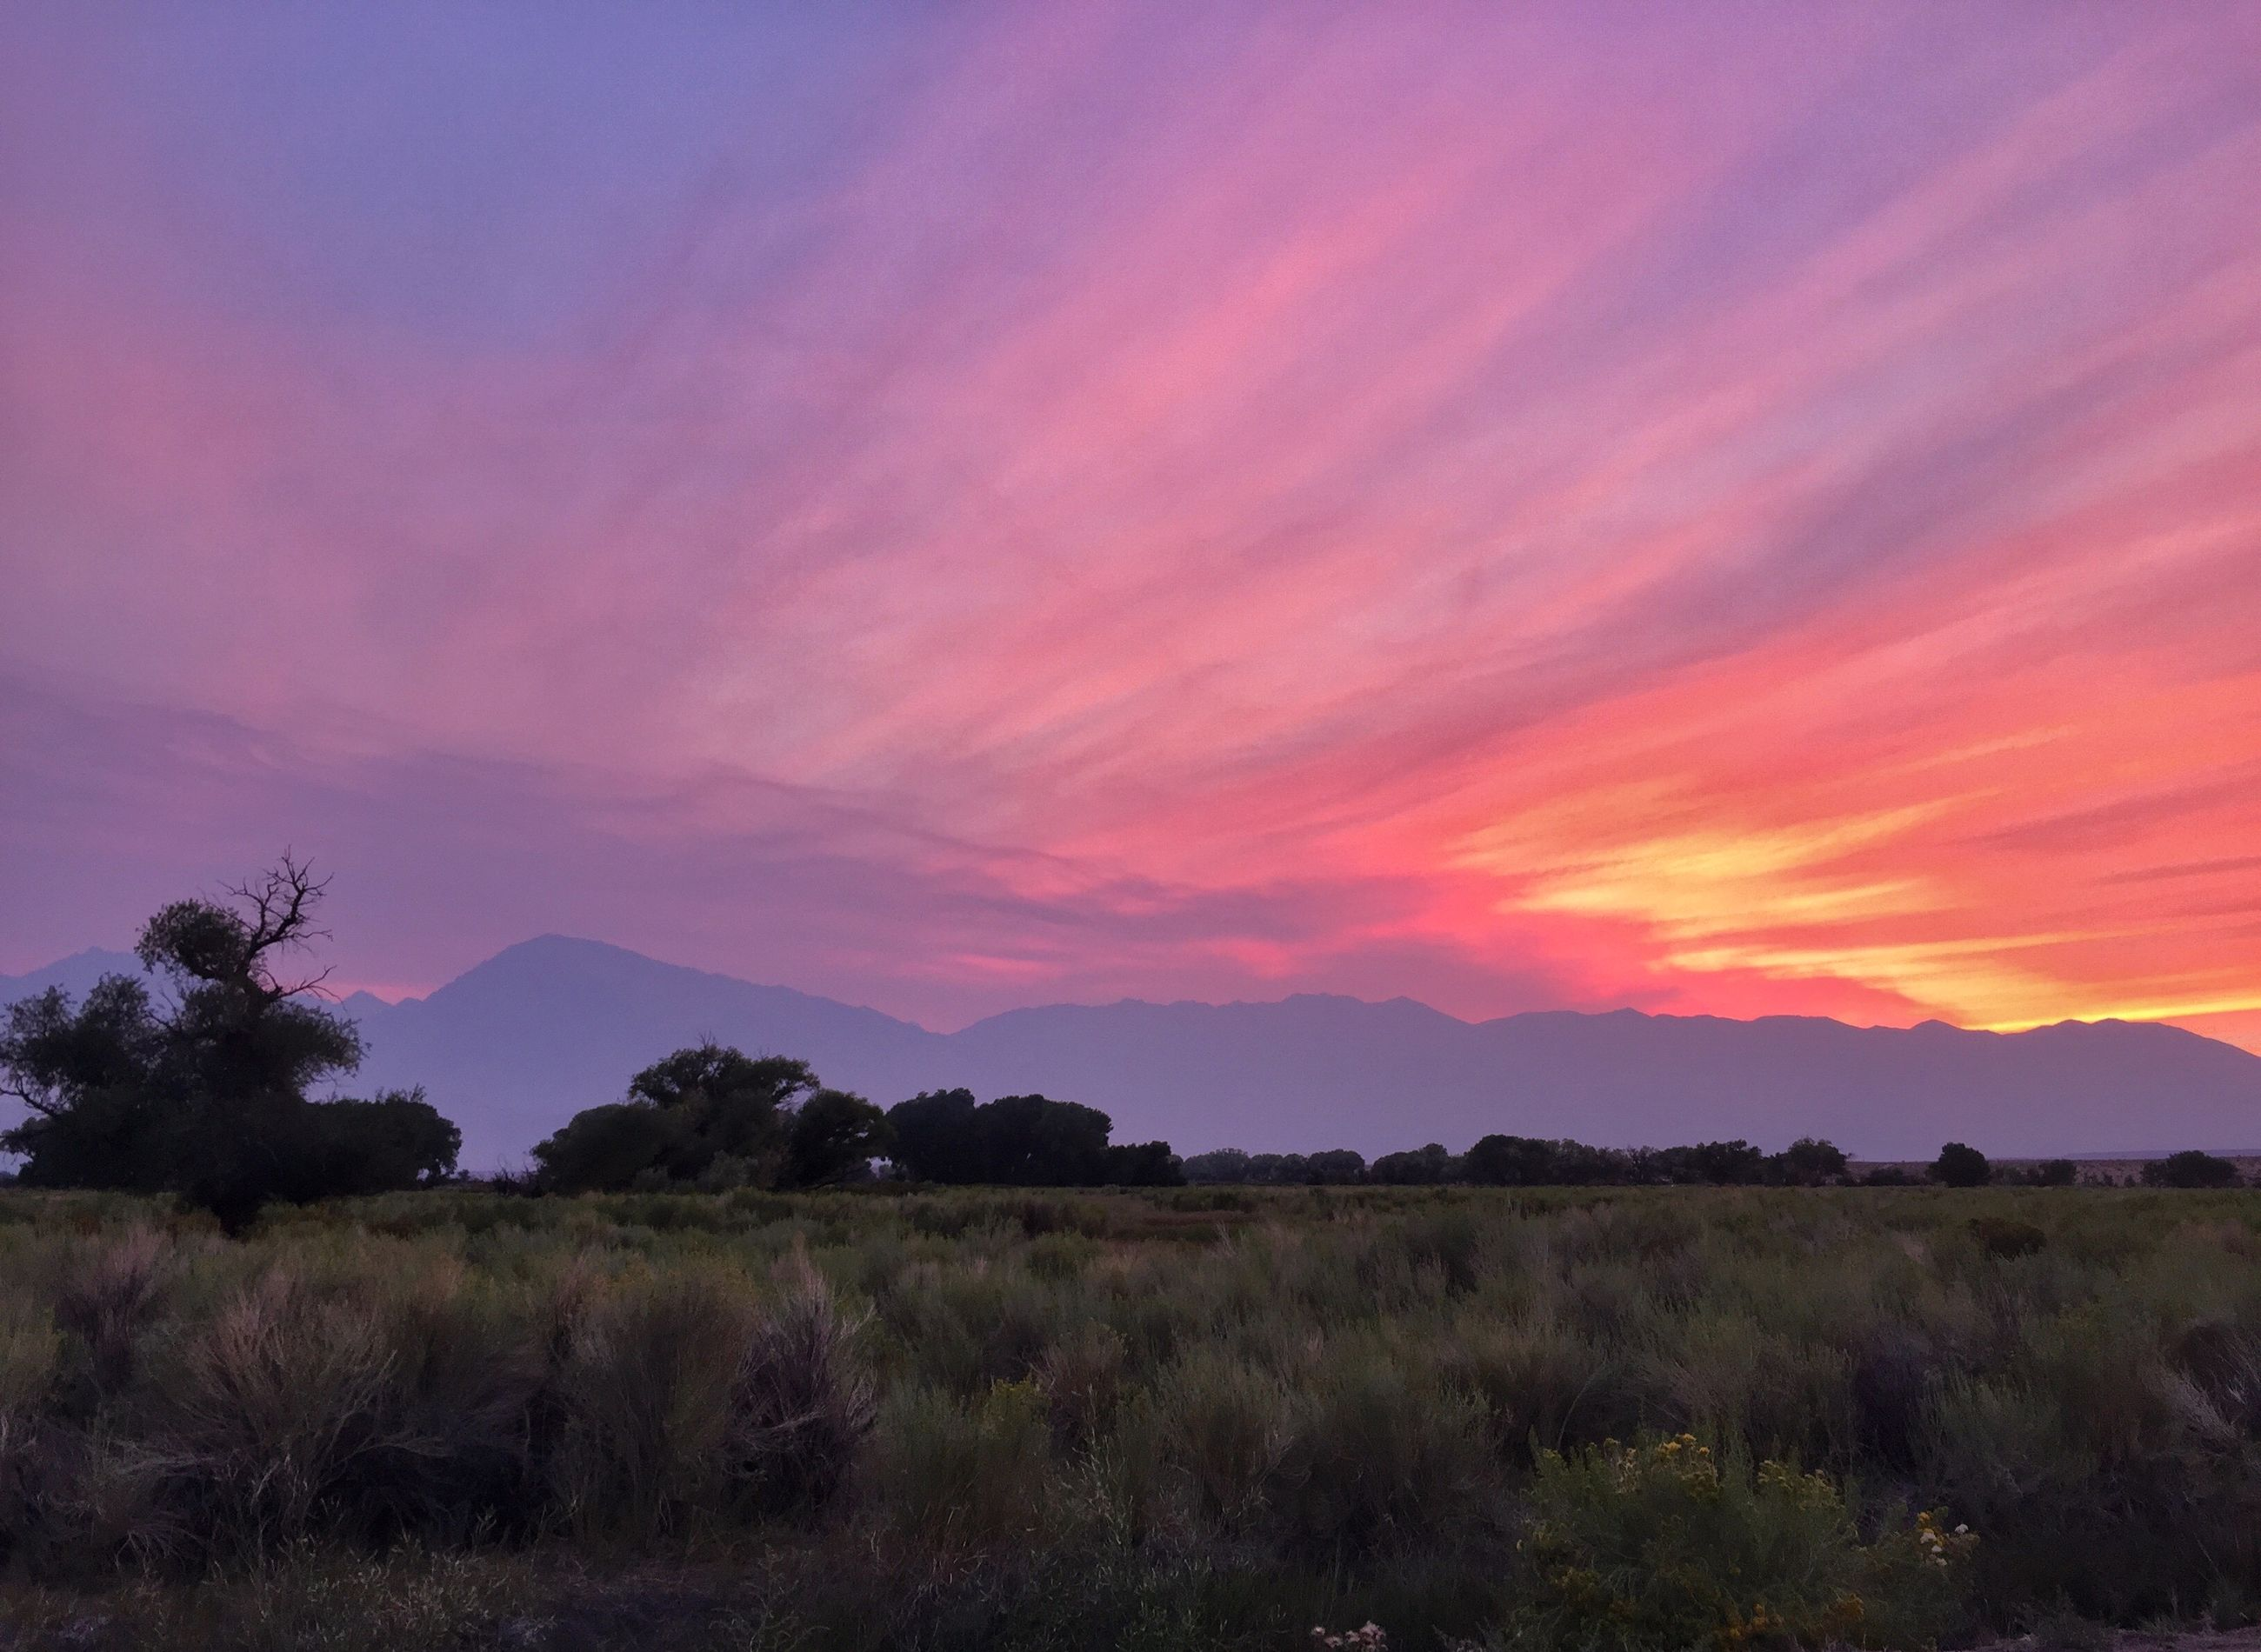 sunset, tranquil scene, tranquility, scenics, sky, landscape, beauty in nature, orange color, nature, tree, field, idyllic, cloud - sky, non-urban scene, cloud, grass, growth, mountain, remote, plant